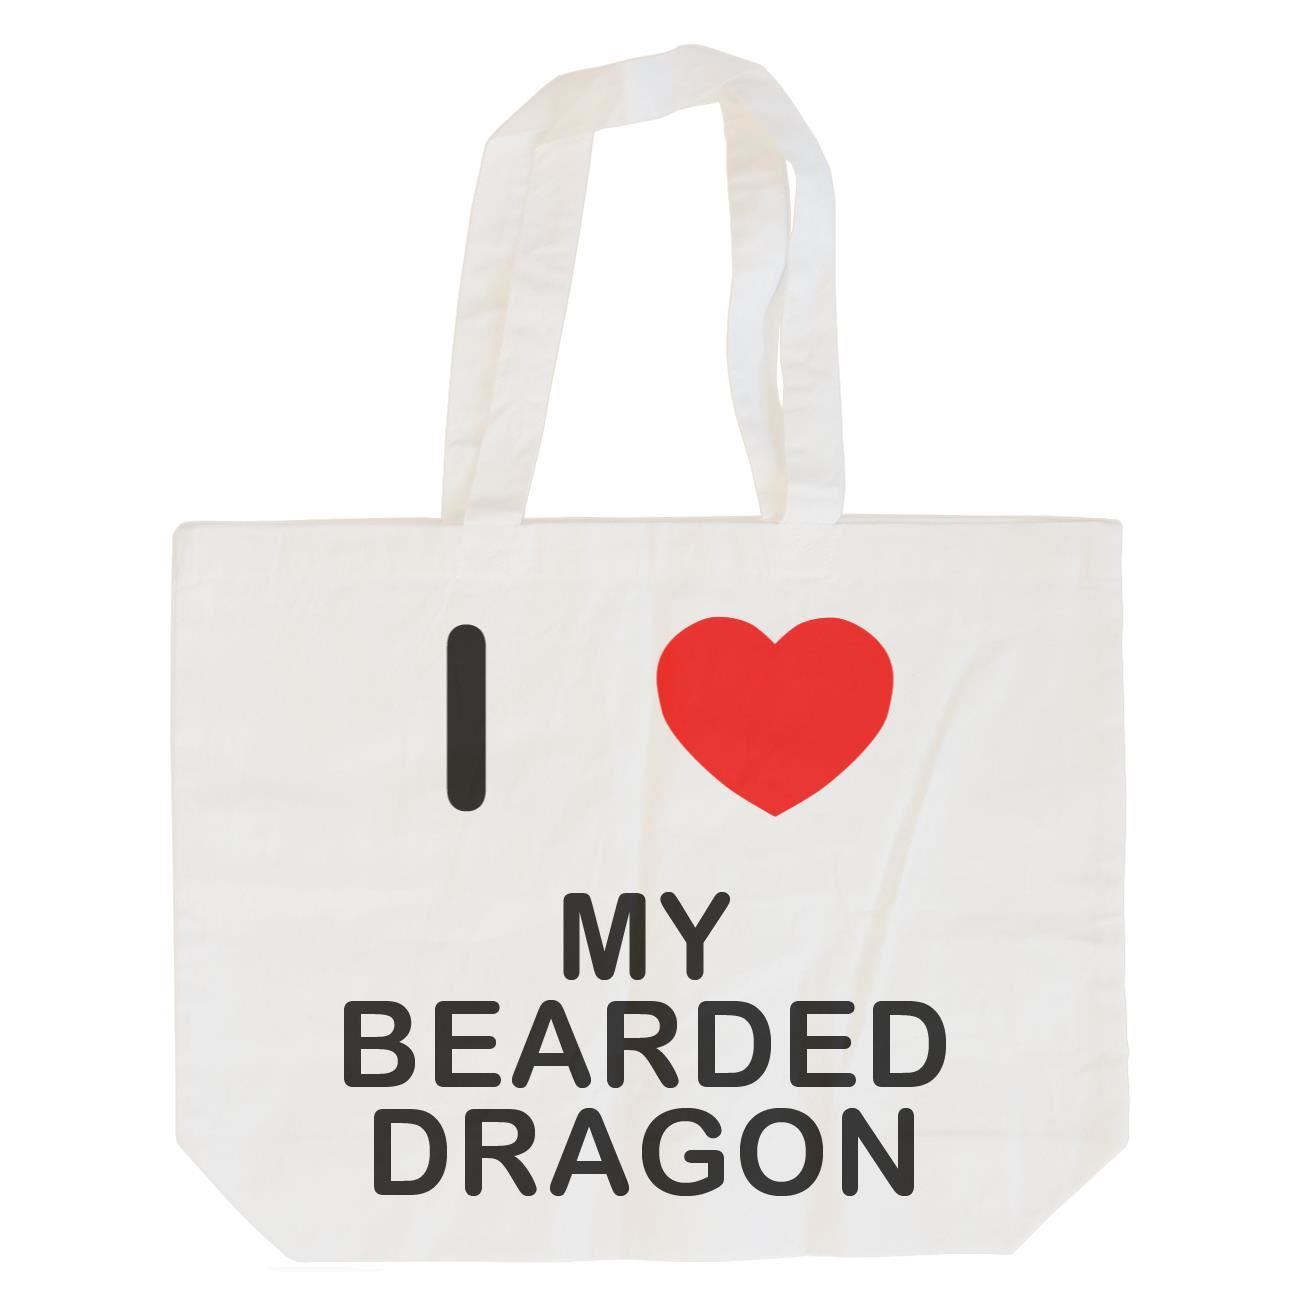 I Love My Bearded Dragon - Cotton Bag | Size choice Tote, Shopper or Sling